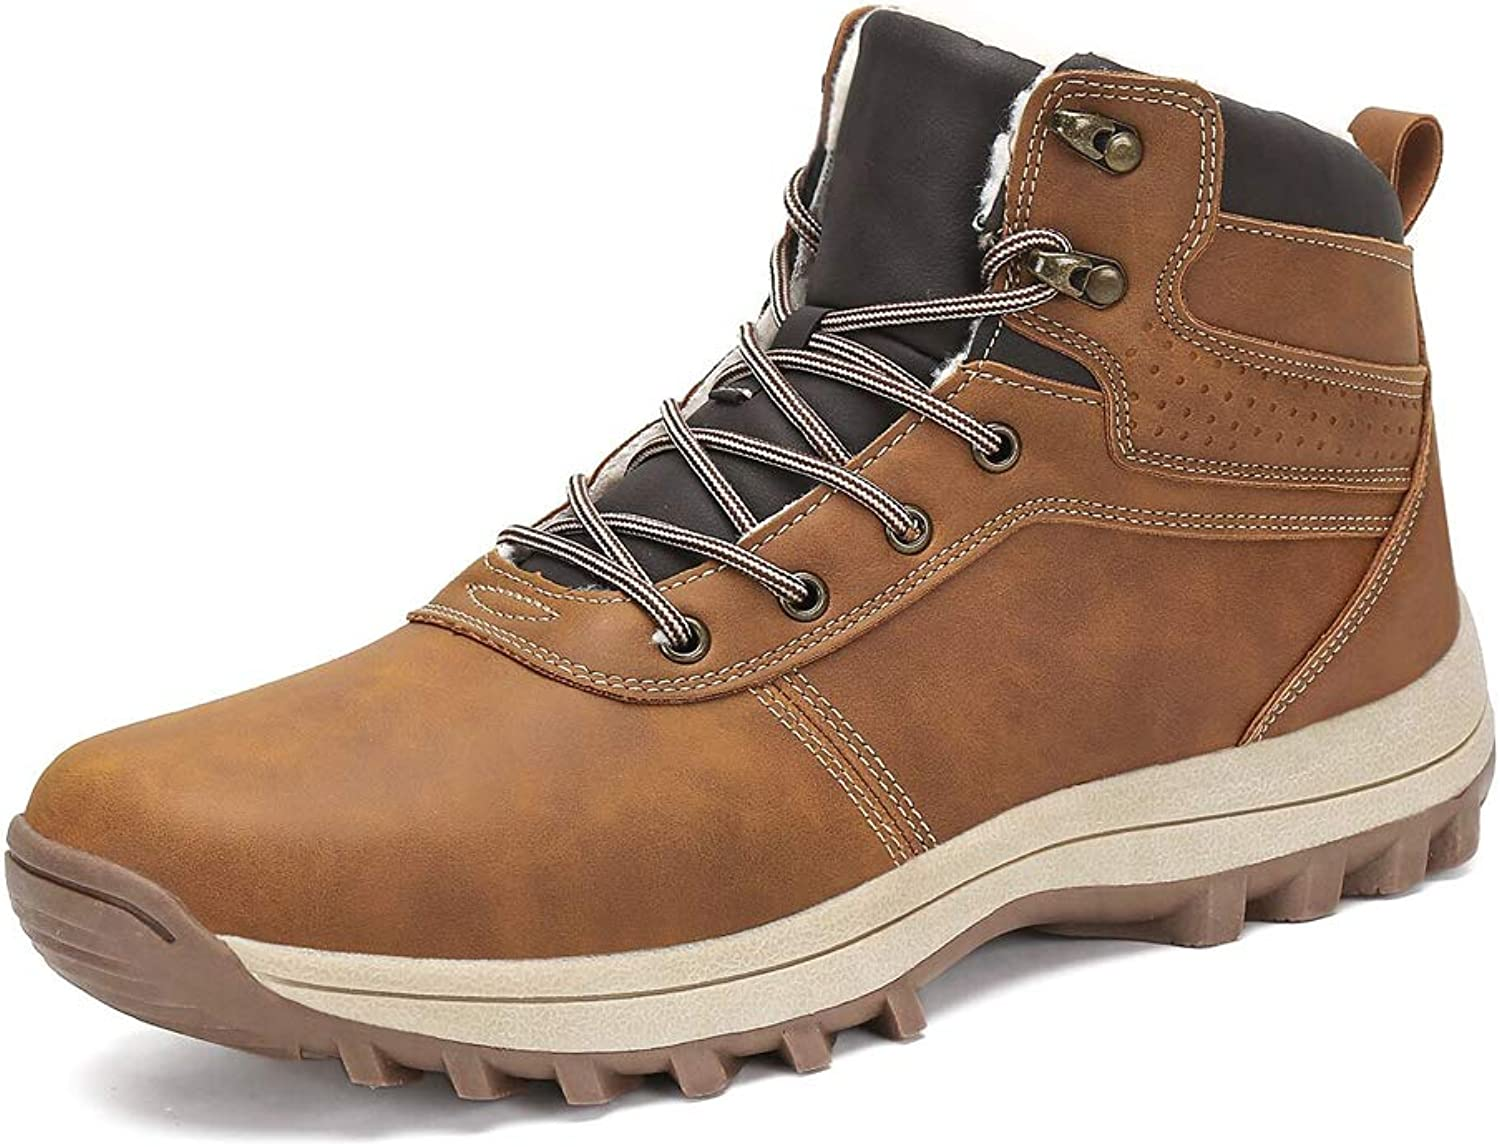 AFT AFFINEST Mens Snow Boots Waterproof Outdoor Hiking shoes Ankle Sneakers